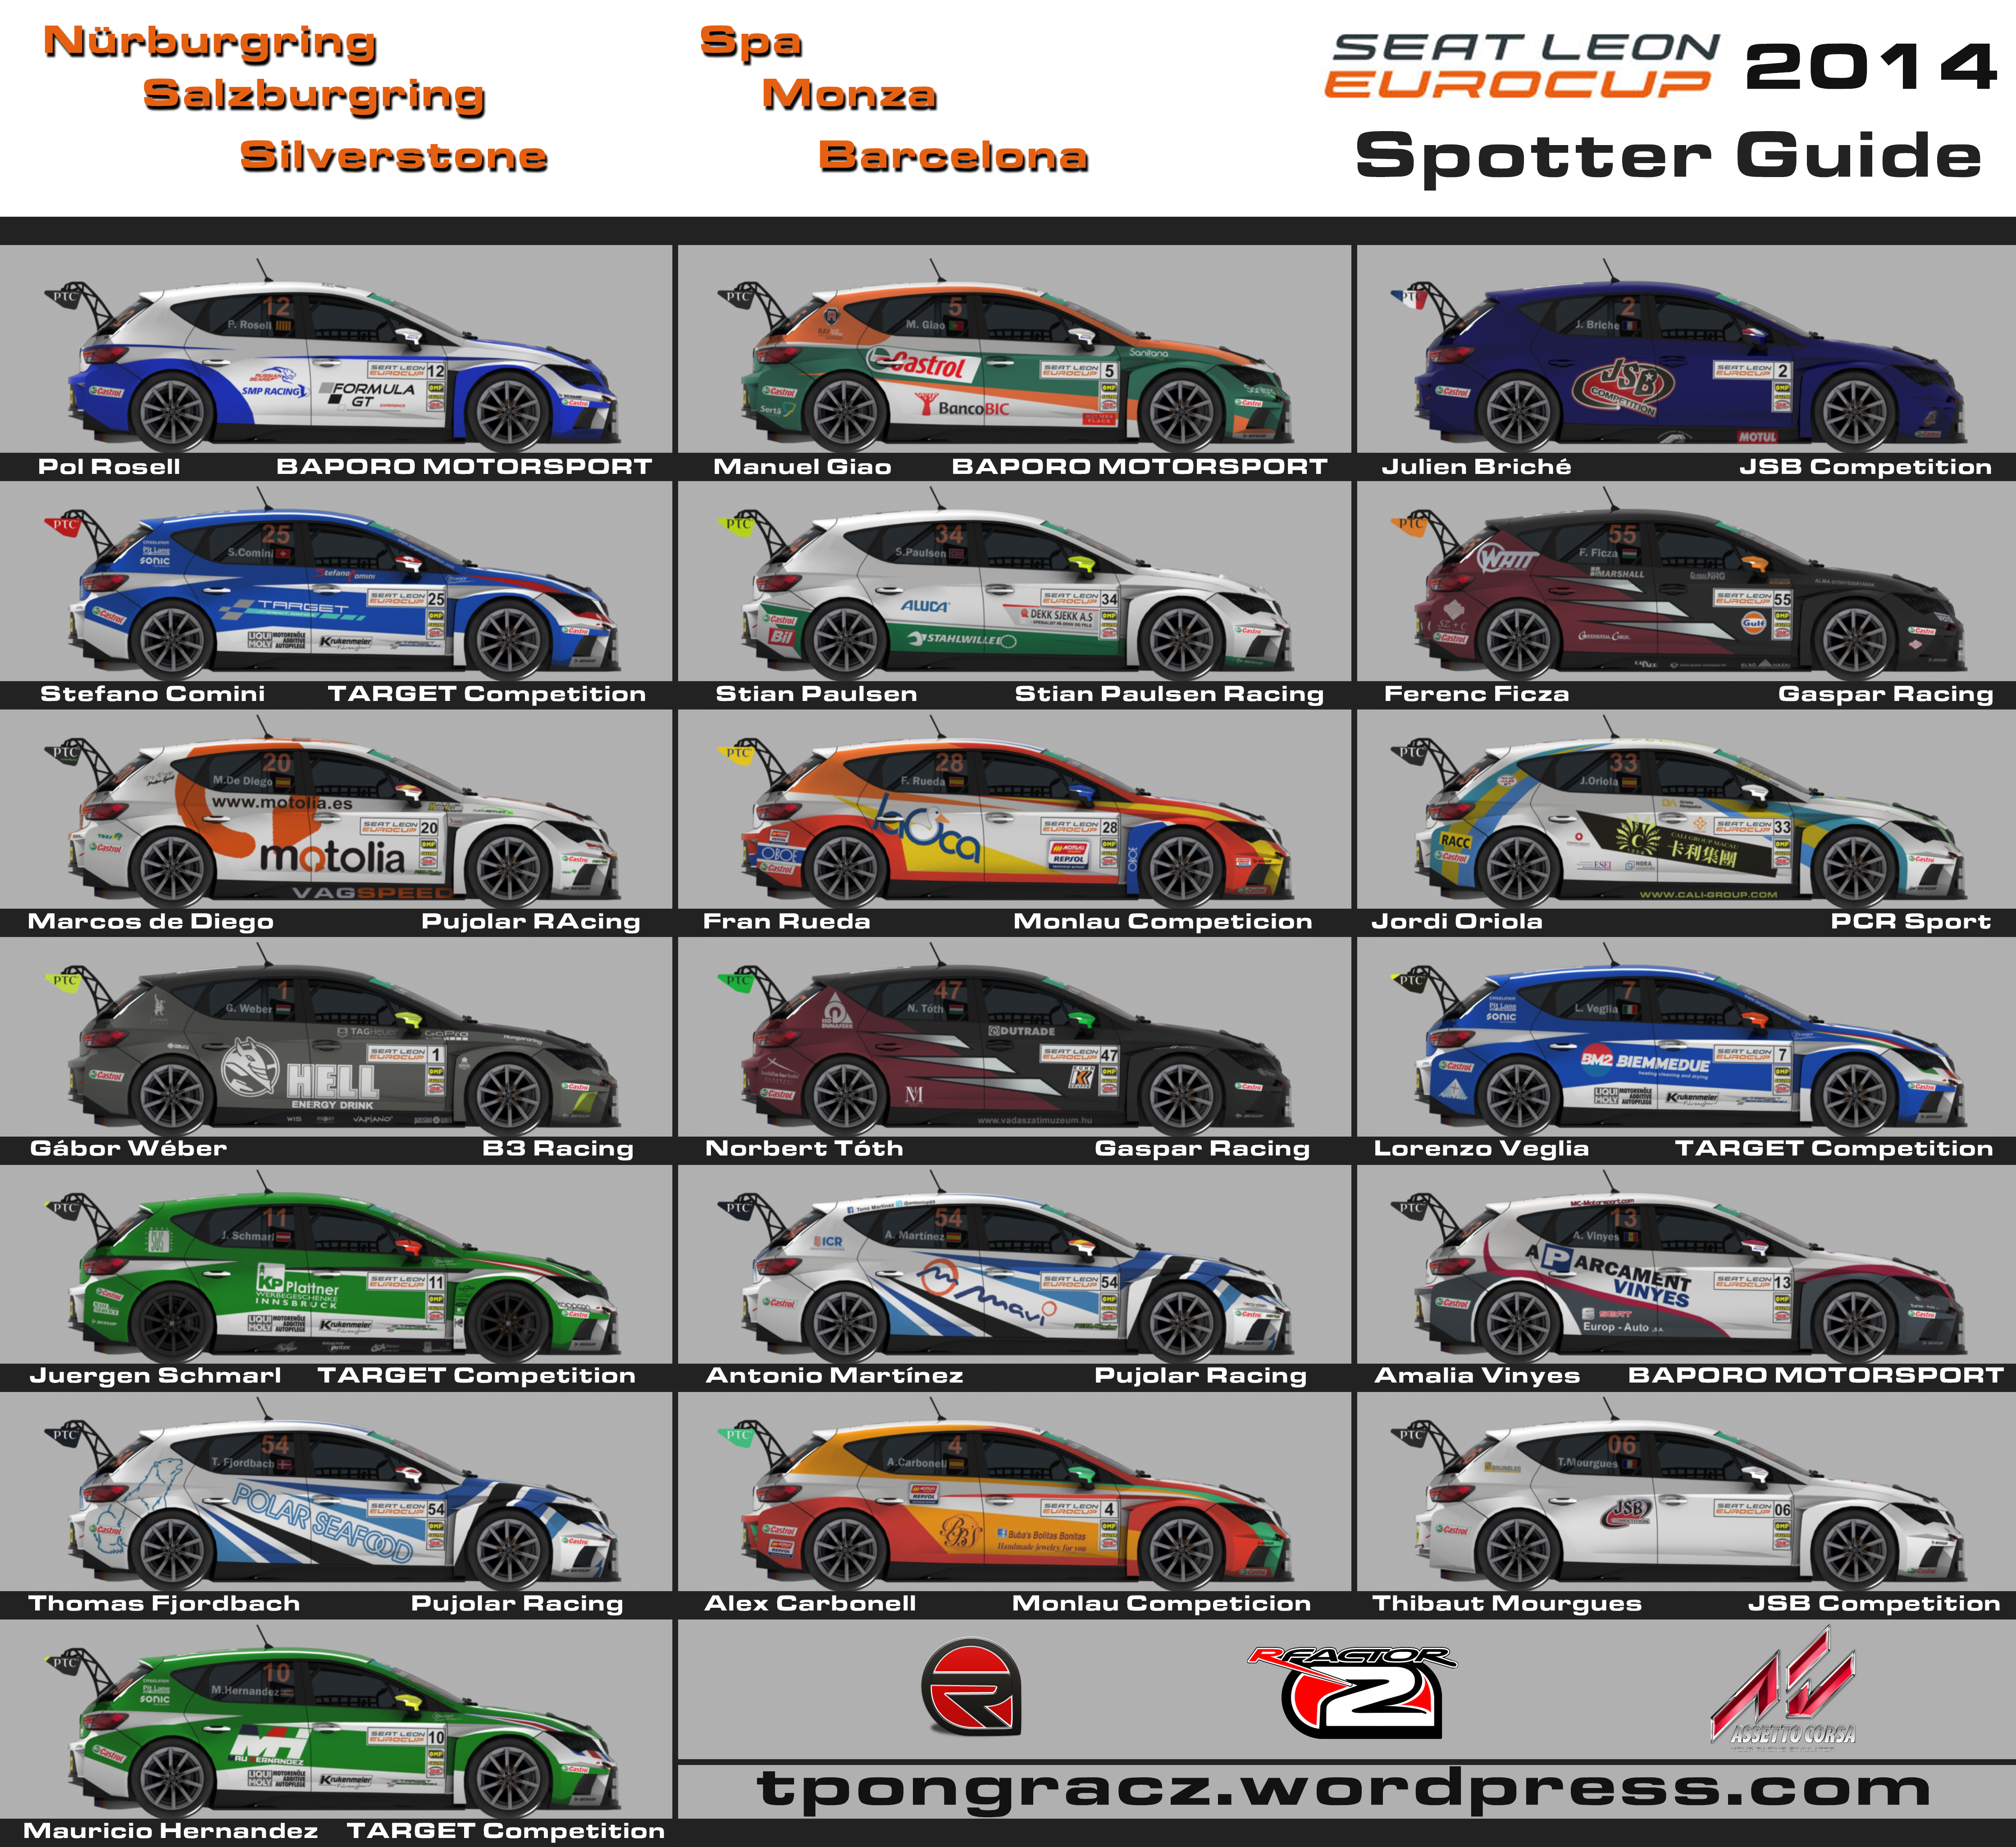 Seat Leon EuroCup 2014 Spotter Guide